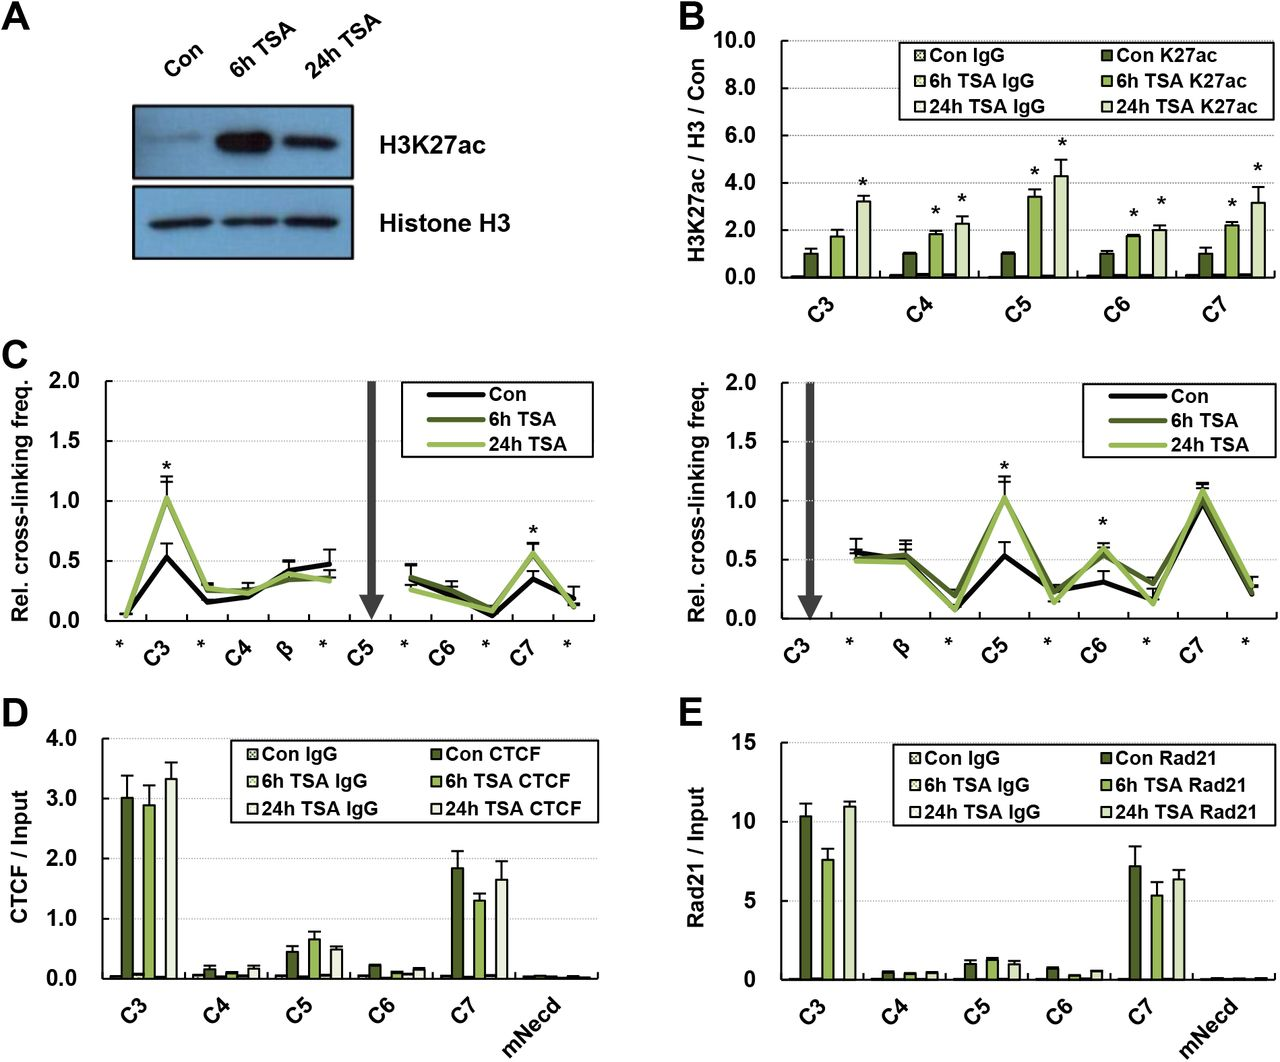 Chromatin interaction between CTCF sites around the β-globin locus in TSA treated MEL/ch11 cells. (A) MEL/ch11 cells were treated with 25 ng/ml of TSA for 6 h or 24 h. Histone H3 acetylated at K27 was detected by Western blotting in nuclear extract from control cells (Con) and cells treated with TSA. Histone H3 was used as an experimental control. (B) H3K27ac was determined in CTCF sites around the β-globin locus by ChIP. DNA immunoprecipitated by H3K27ac antibodies were quantitatively compared with DNA immunoprecipitated by H3, and then normalized to value in control cells. Normal IgG (IgG) was used as an experimental negative control. (C) Relative cross-linking frequencies was determined between CTCF sites around the β-globin locus in 3C assay as described in Fig 1E . Fragments containing C5 and C3 were used as anchors. Occupancies of CTCF (D) and Rad21 (E) were determined at the CTCF sites by ChIP. Results are presented as the means ± SEM of four to six independent experiments in ChIP and 3C assay. *P